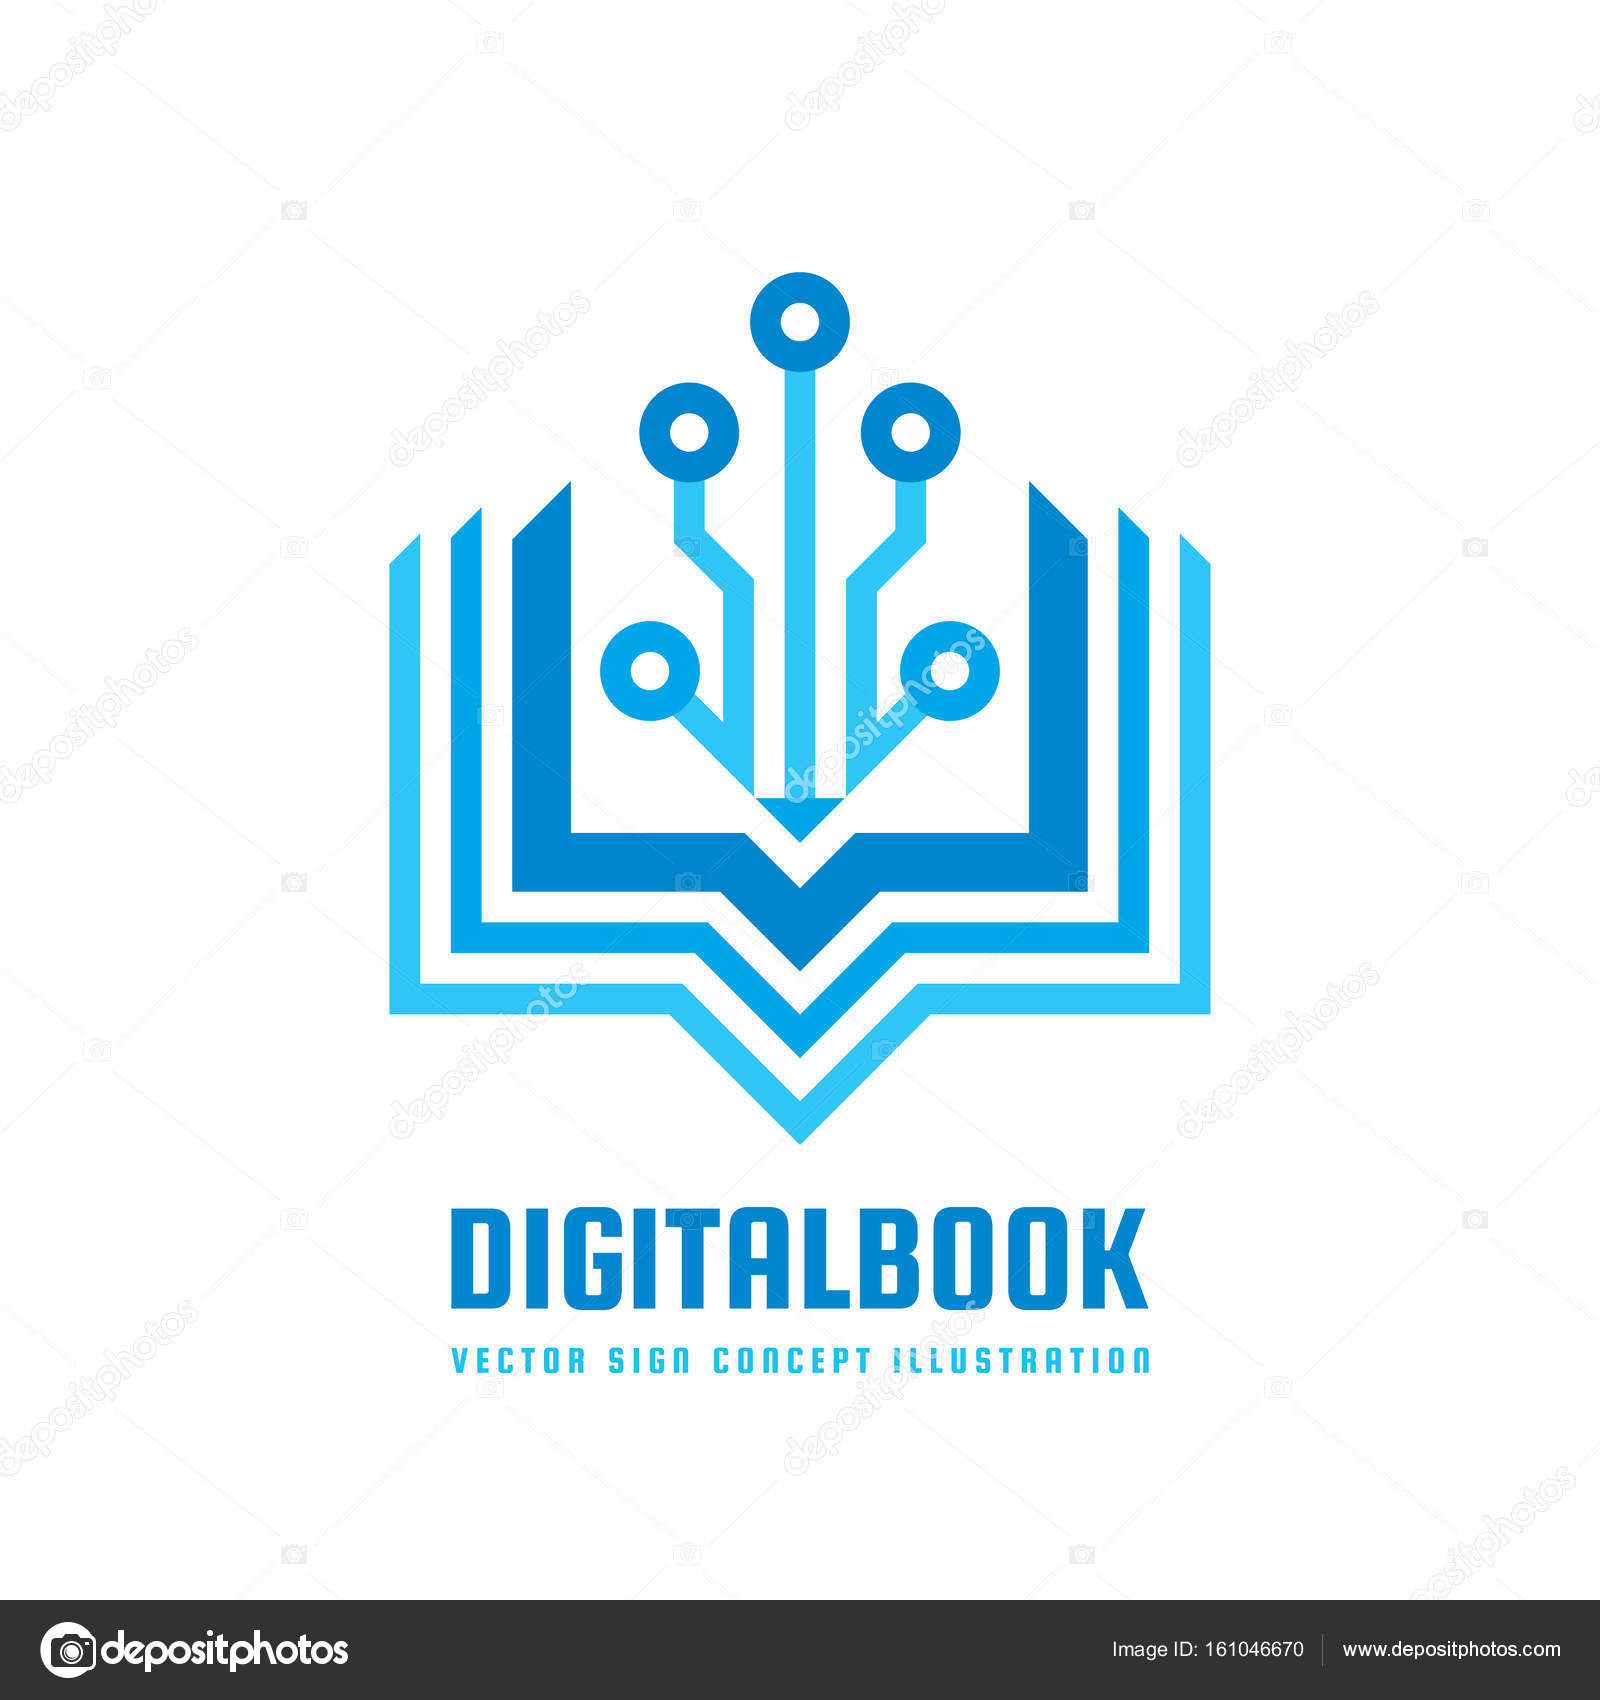 Digital Book Vector Logo Template Concept Illustration